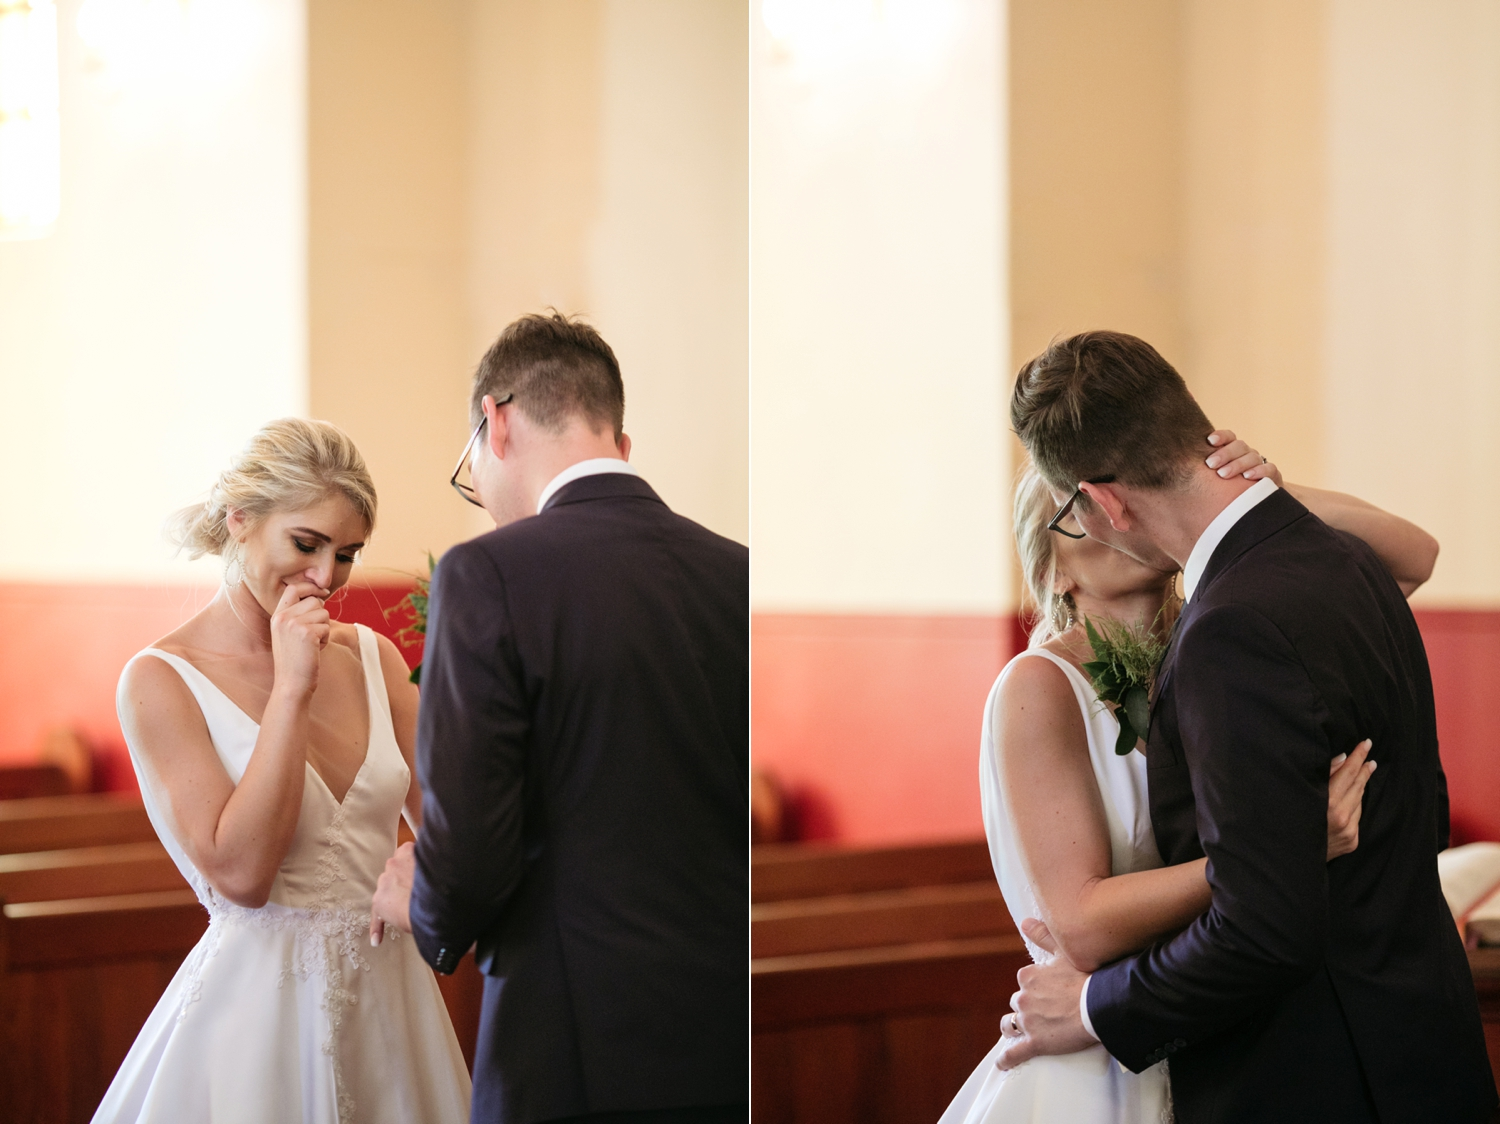 Emotional Candid Moment Bride Listens To Groom Say Vows And First Kiss